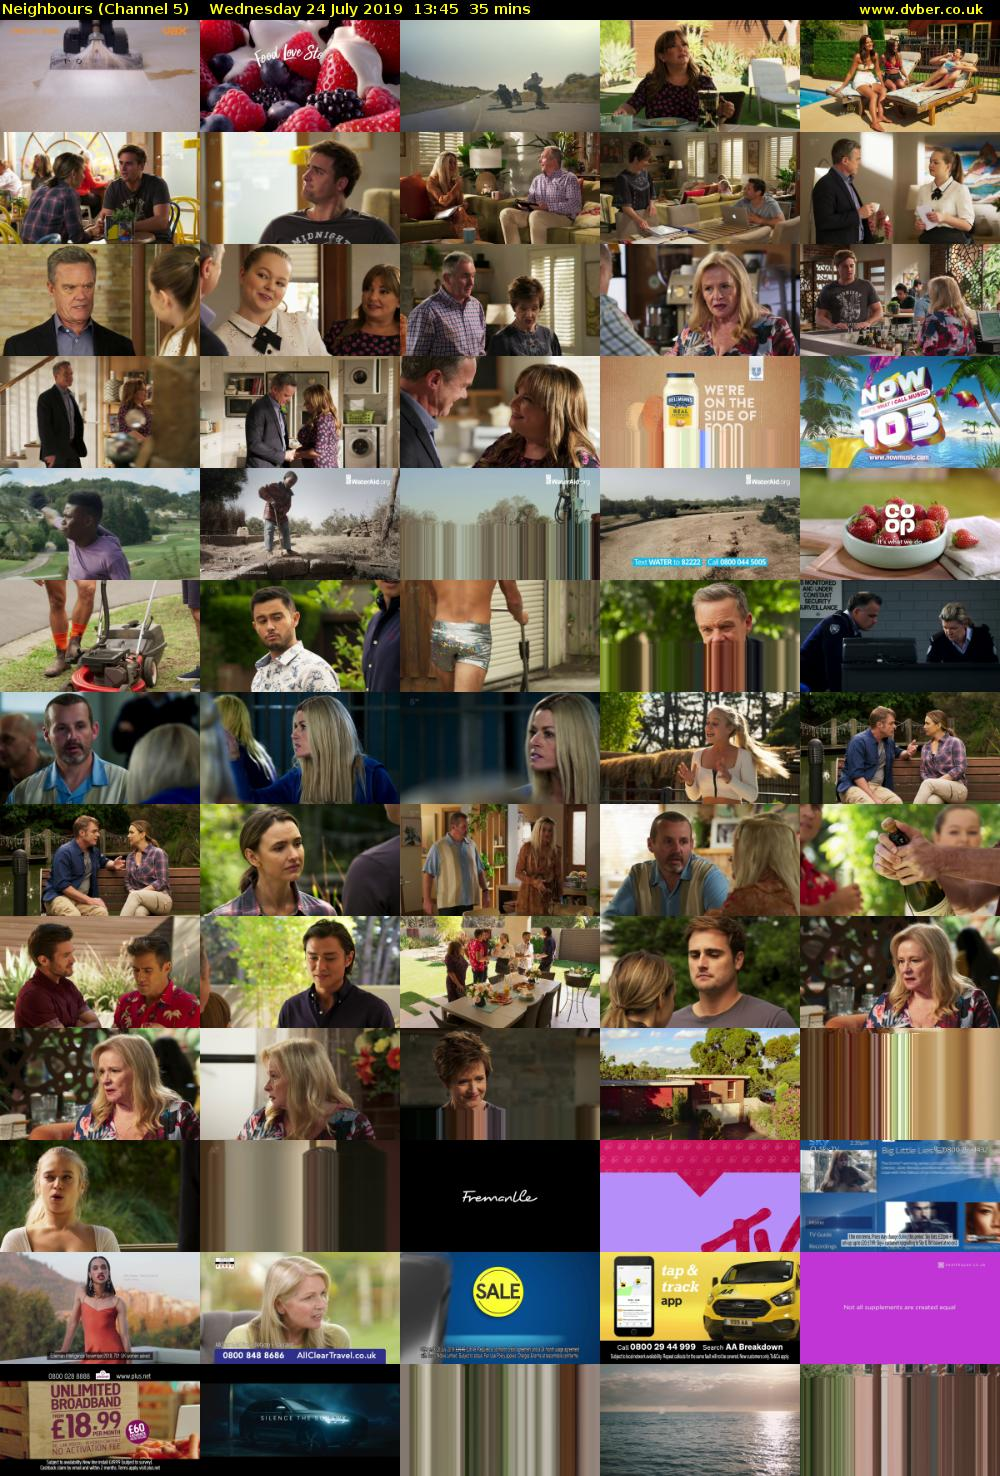 Neighbours (Channel 5) Wednesday 24 July 2019 13:45 - 14:20